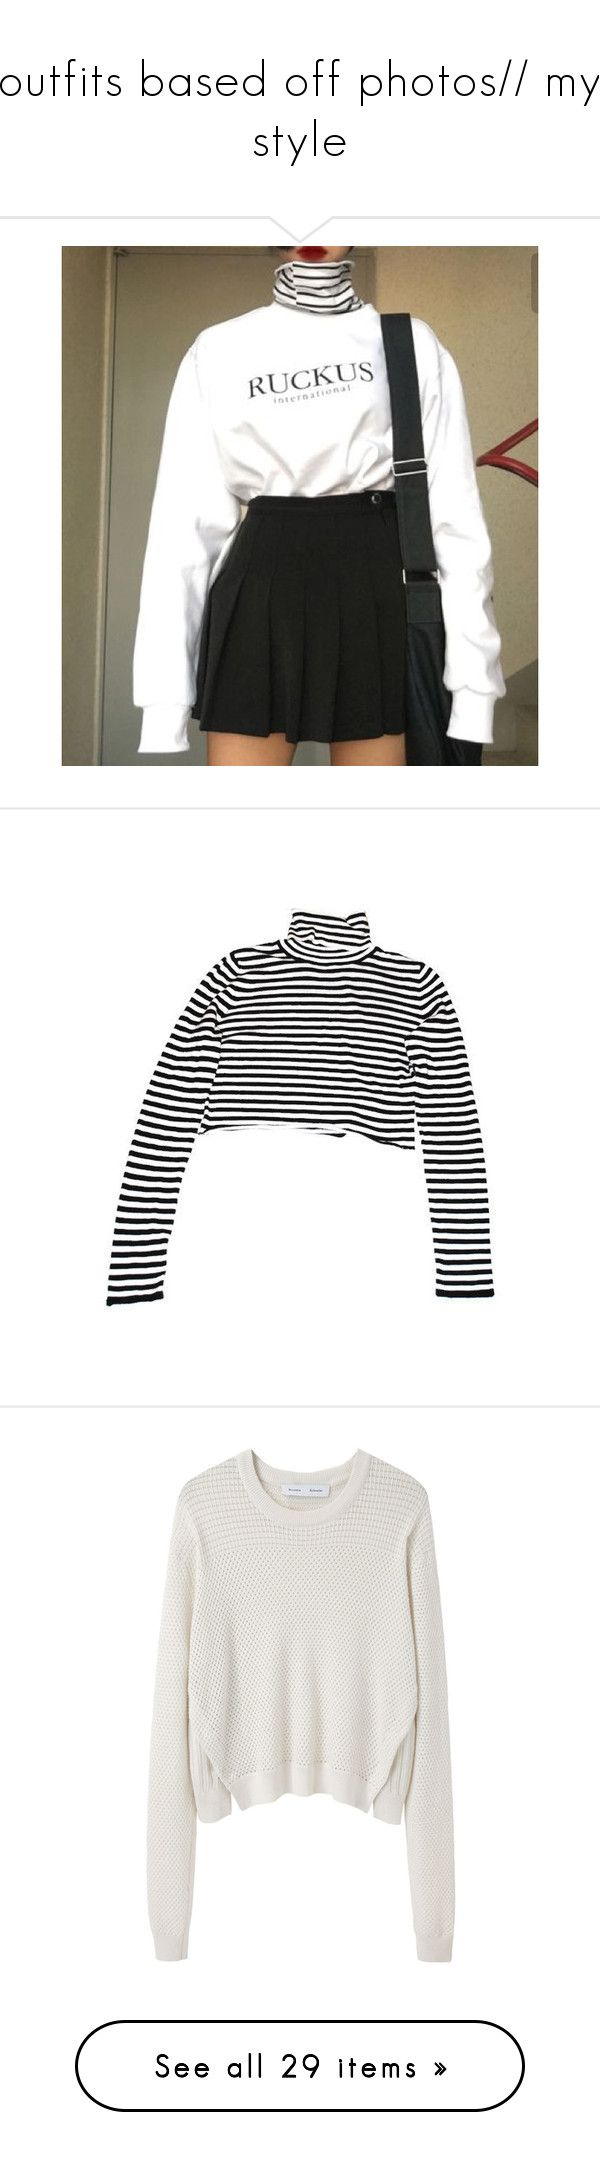 """outfits based off photos// my style"" by dead-rhapsody ❤ liked on Polyvore featuring tops, shirts, crop top, sweaters, striped turtleneck top, turtle neck crop top, cropped tops, turtle neck top, striped top and jumpers"